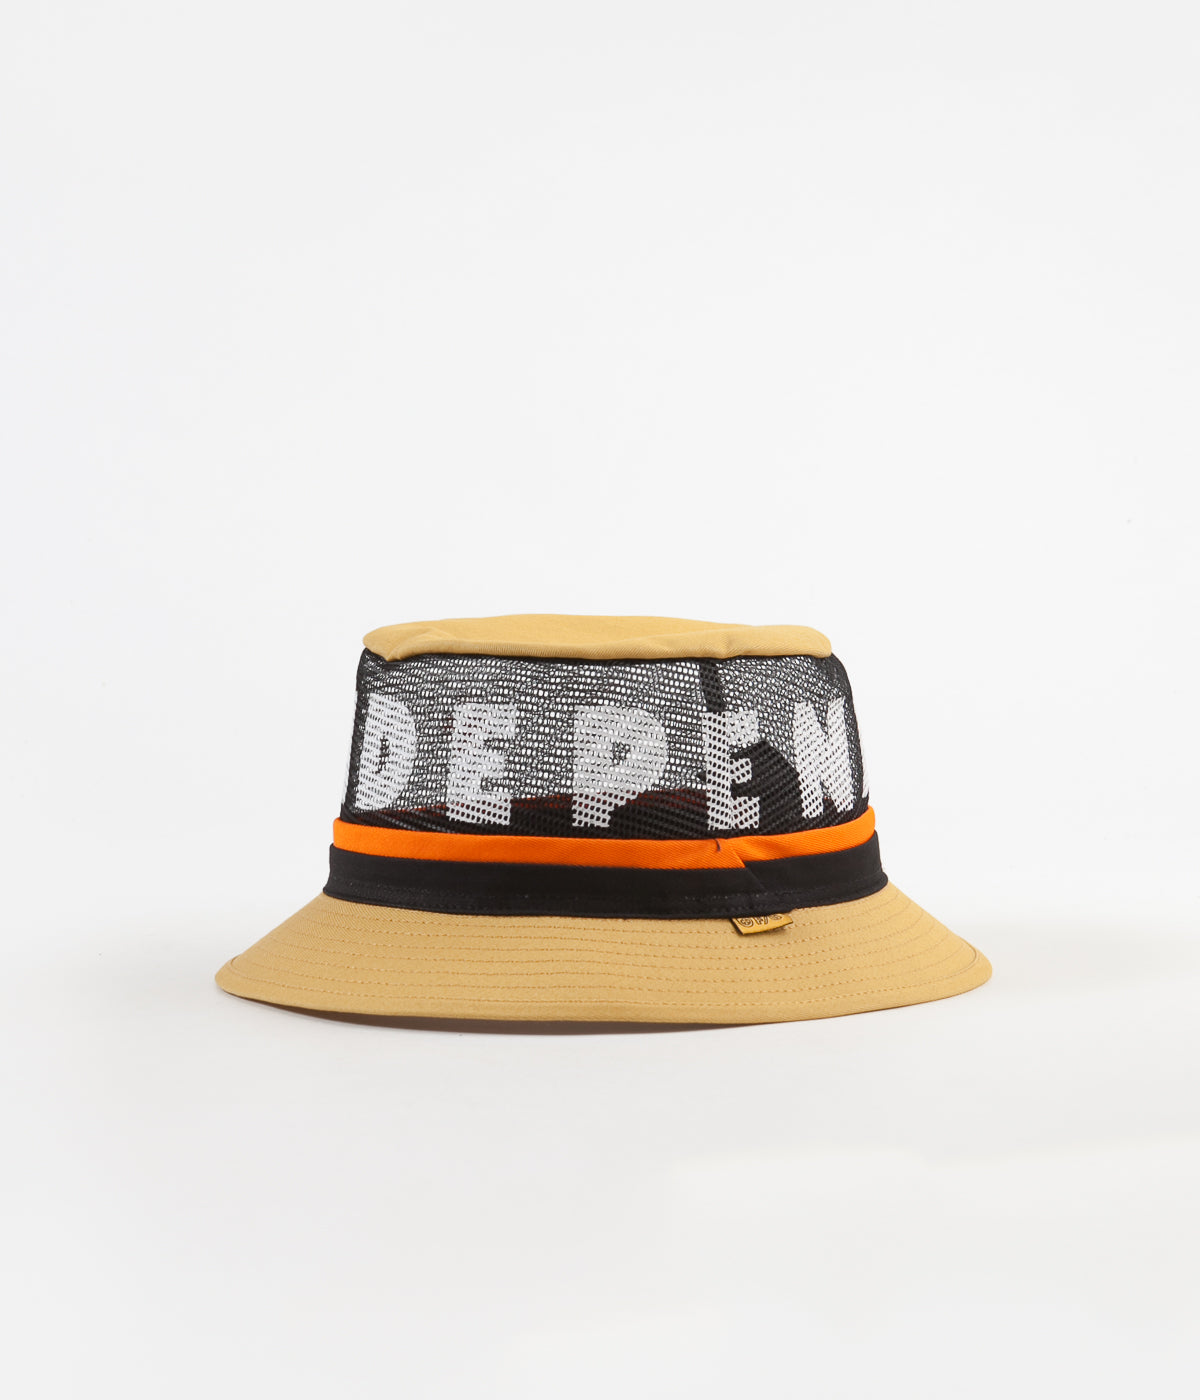 Brixton x Independent F U Hardy Bucket Hat - Yellow  6c1ed79a730